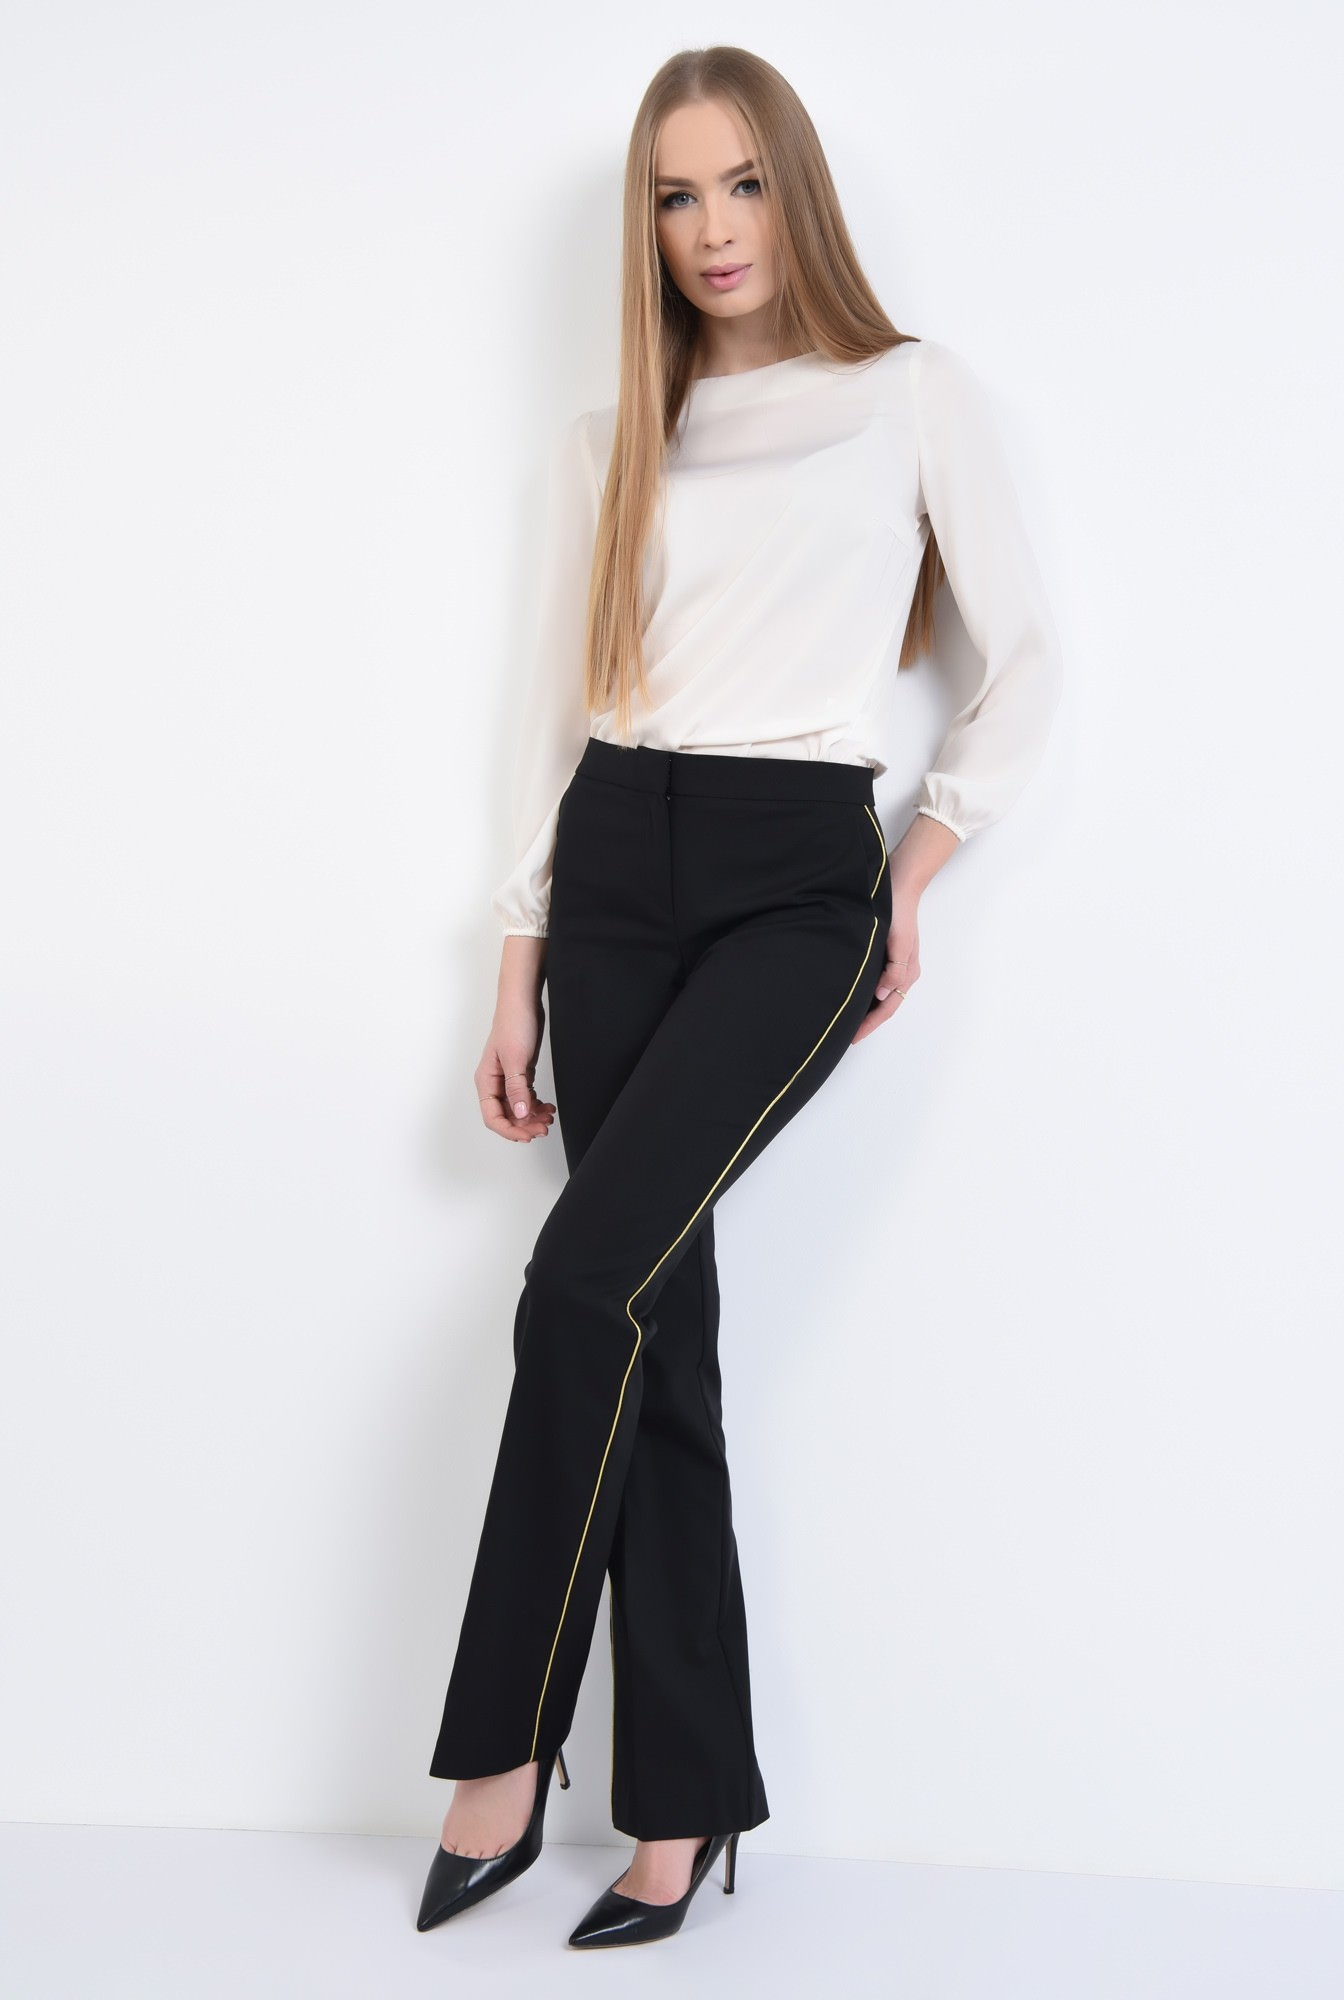 3 - PANTALON OFFICE PT 192-NEGRU